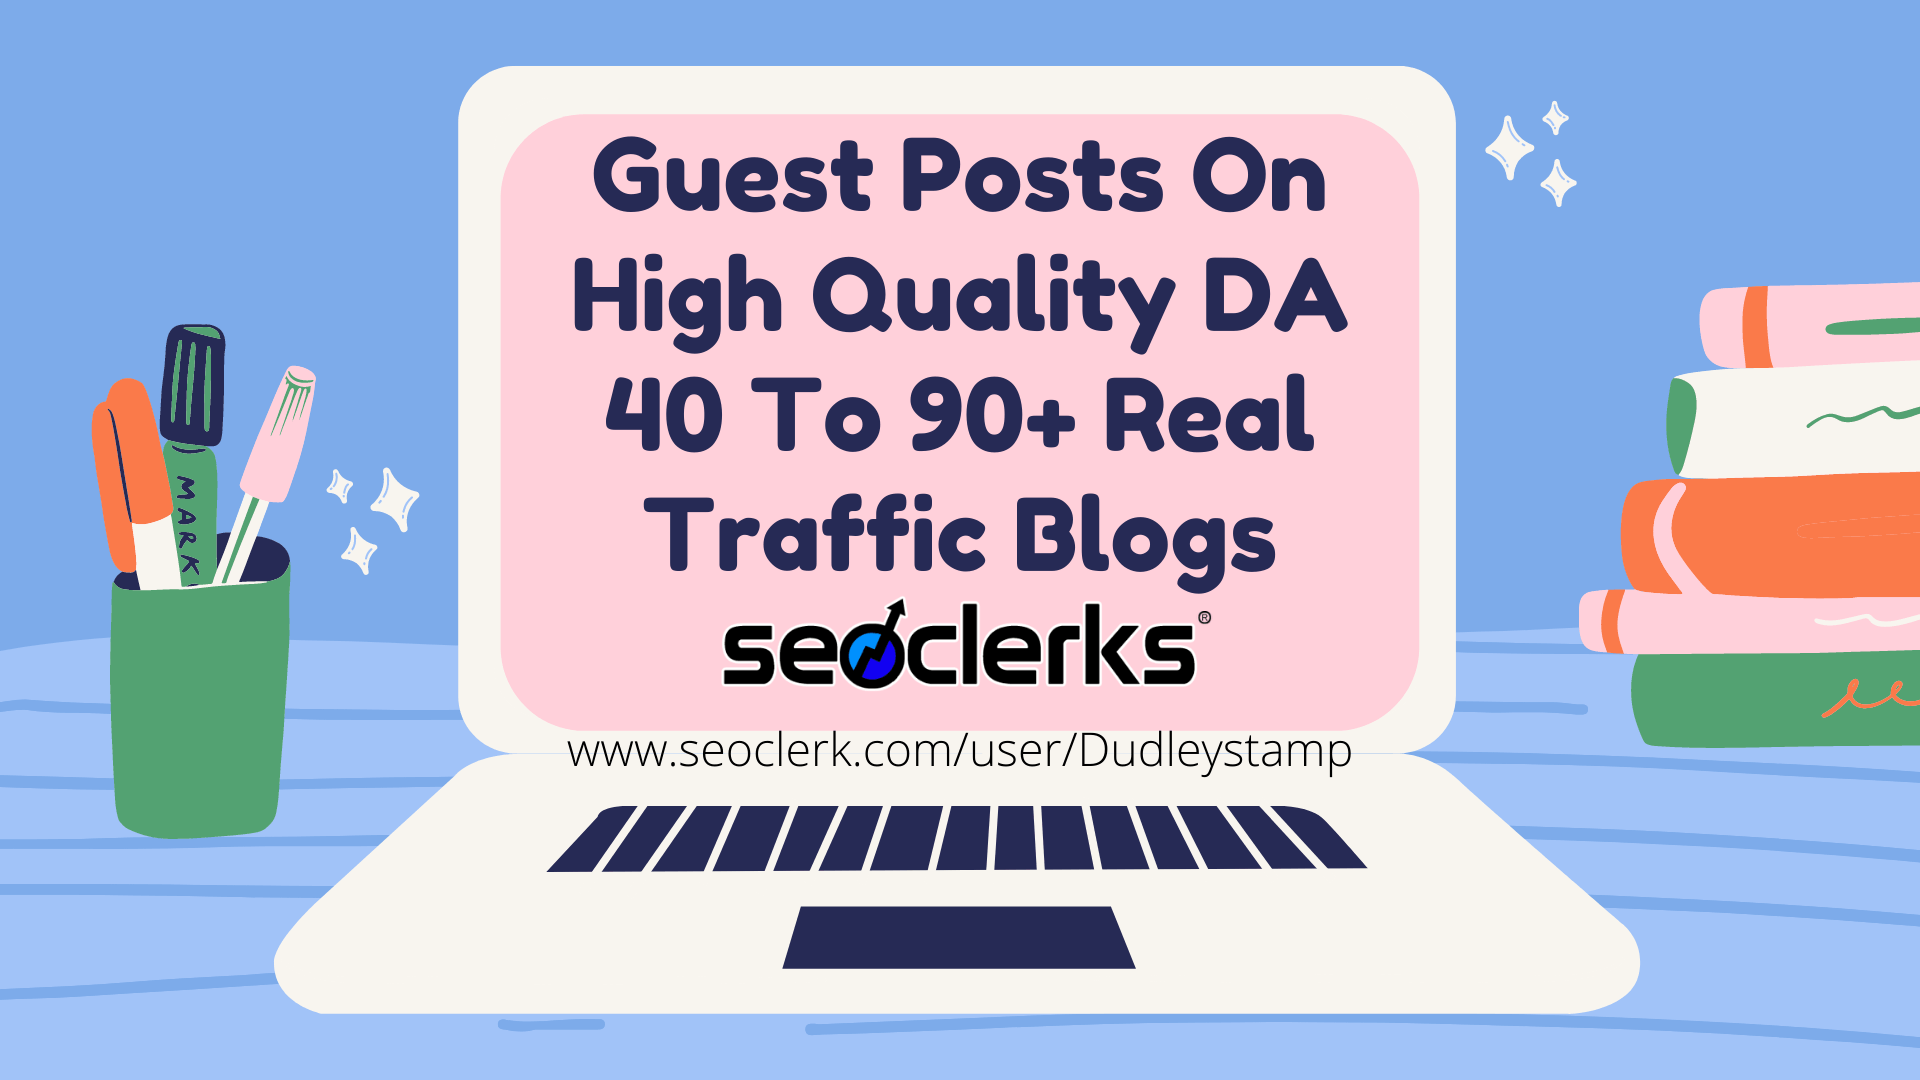 Write And Publish 9 Guest Posts On High Quality DA 40 To 90+ Real Traffic Blogs